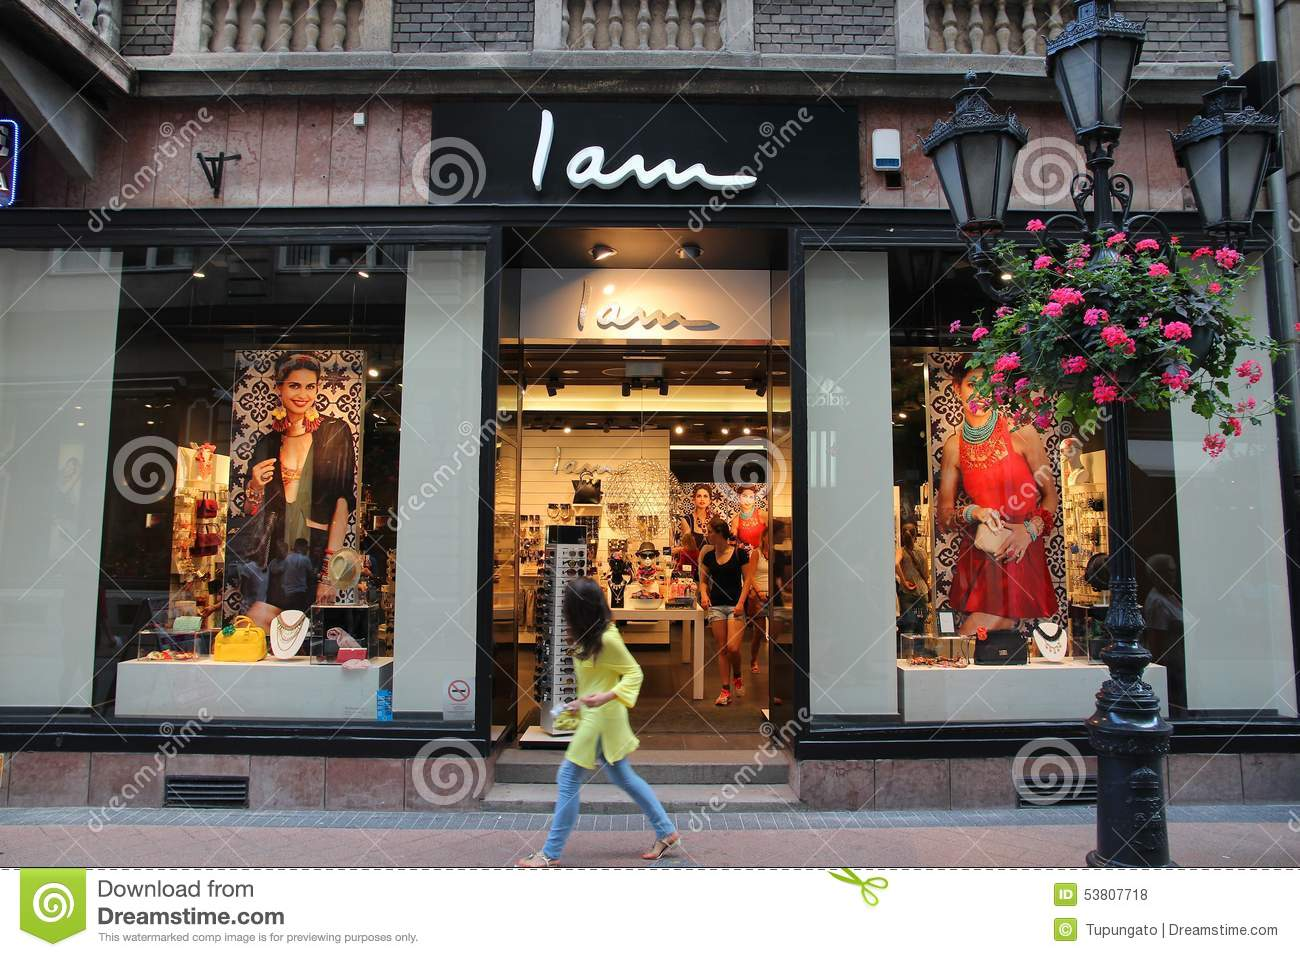 Will i am clothing shop online